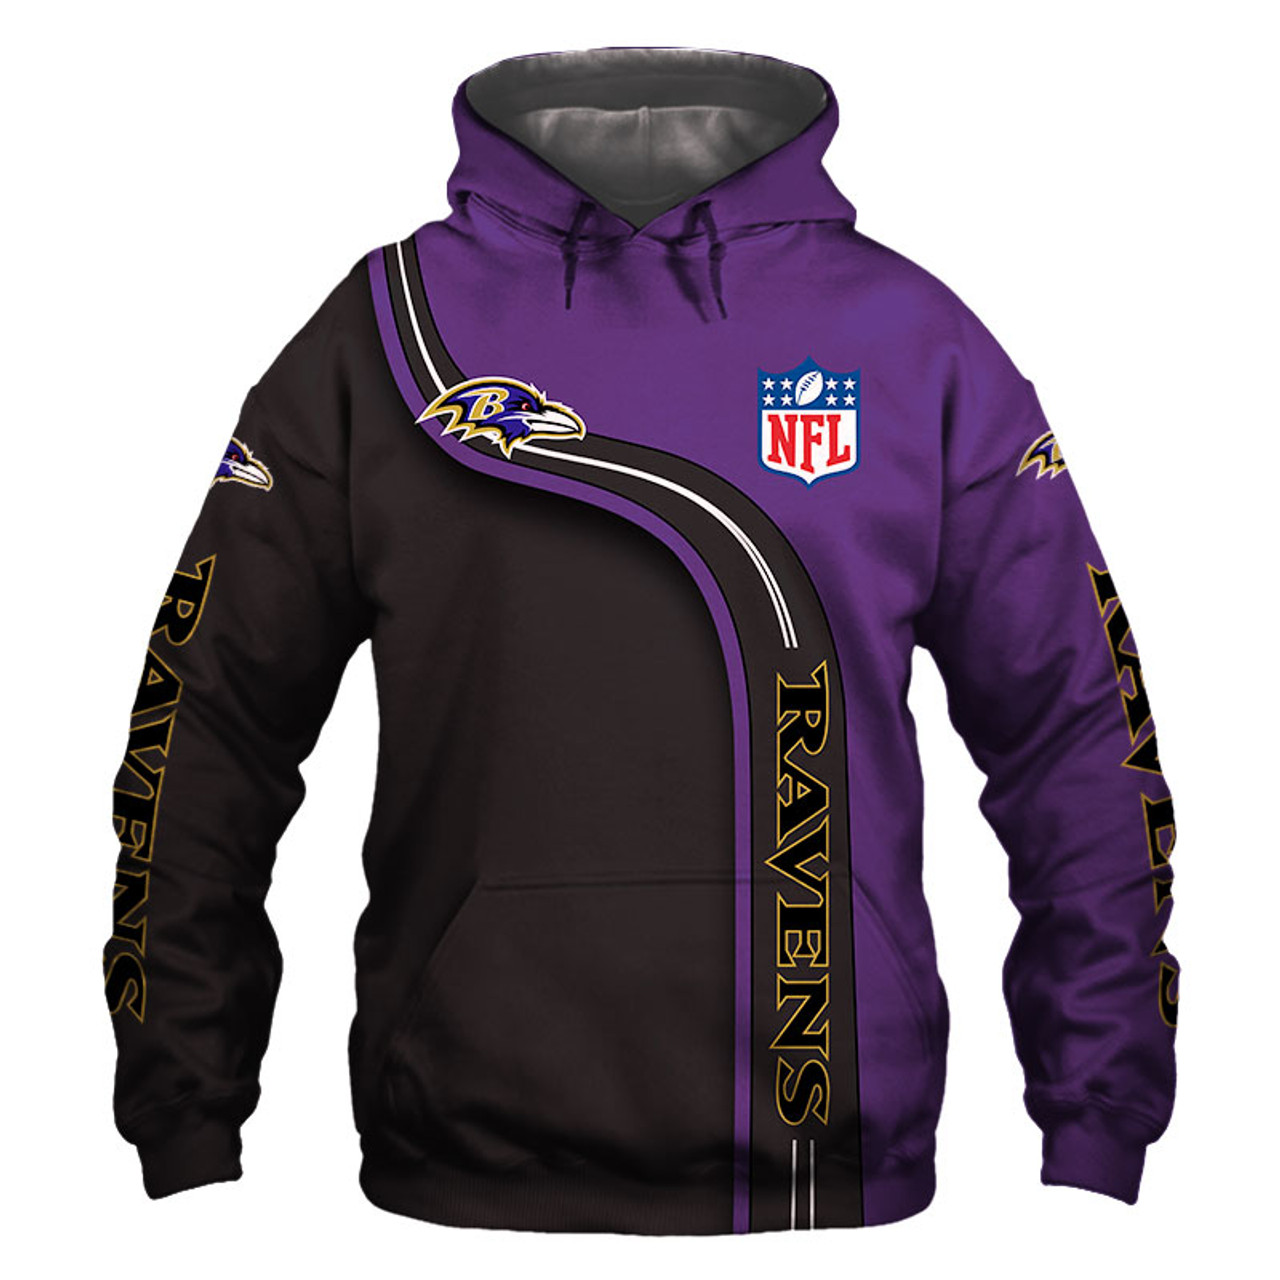 **(OFFICIAL-N.F.L.BALTIMORE-RAVENS-FASHION-PULLOVER-TEAM-HOODIES/CUSTOM-3D-GRAPHIC-PRINTED-DETAILED-DOUBLE-SIDED-DESIGN/CLASSIC-OFFICIAL-RAVENS-TEAM-LOGOS & OFFICIAL-RAVENS-TEAM-COLORS/WARM-PREMIUM-OFFICIAL-N.F.L.RAVENS-FAN-TEAM-PULLOVER-HOODIE)**